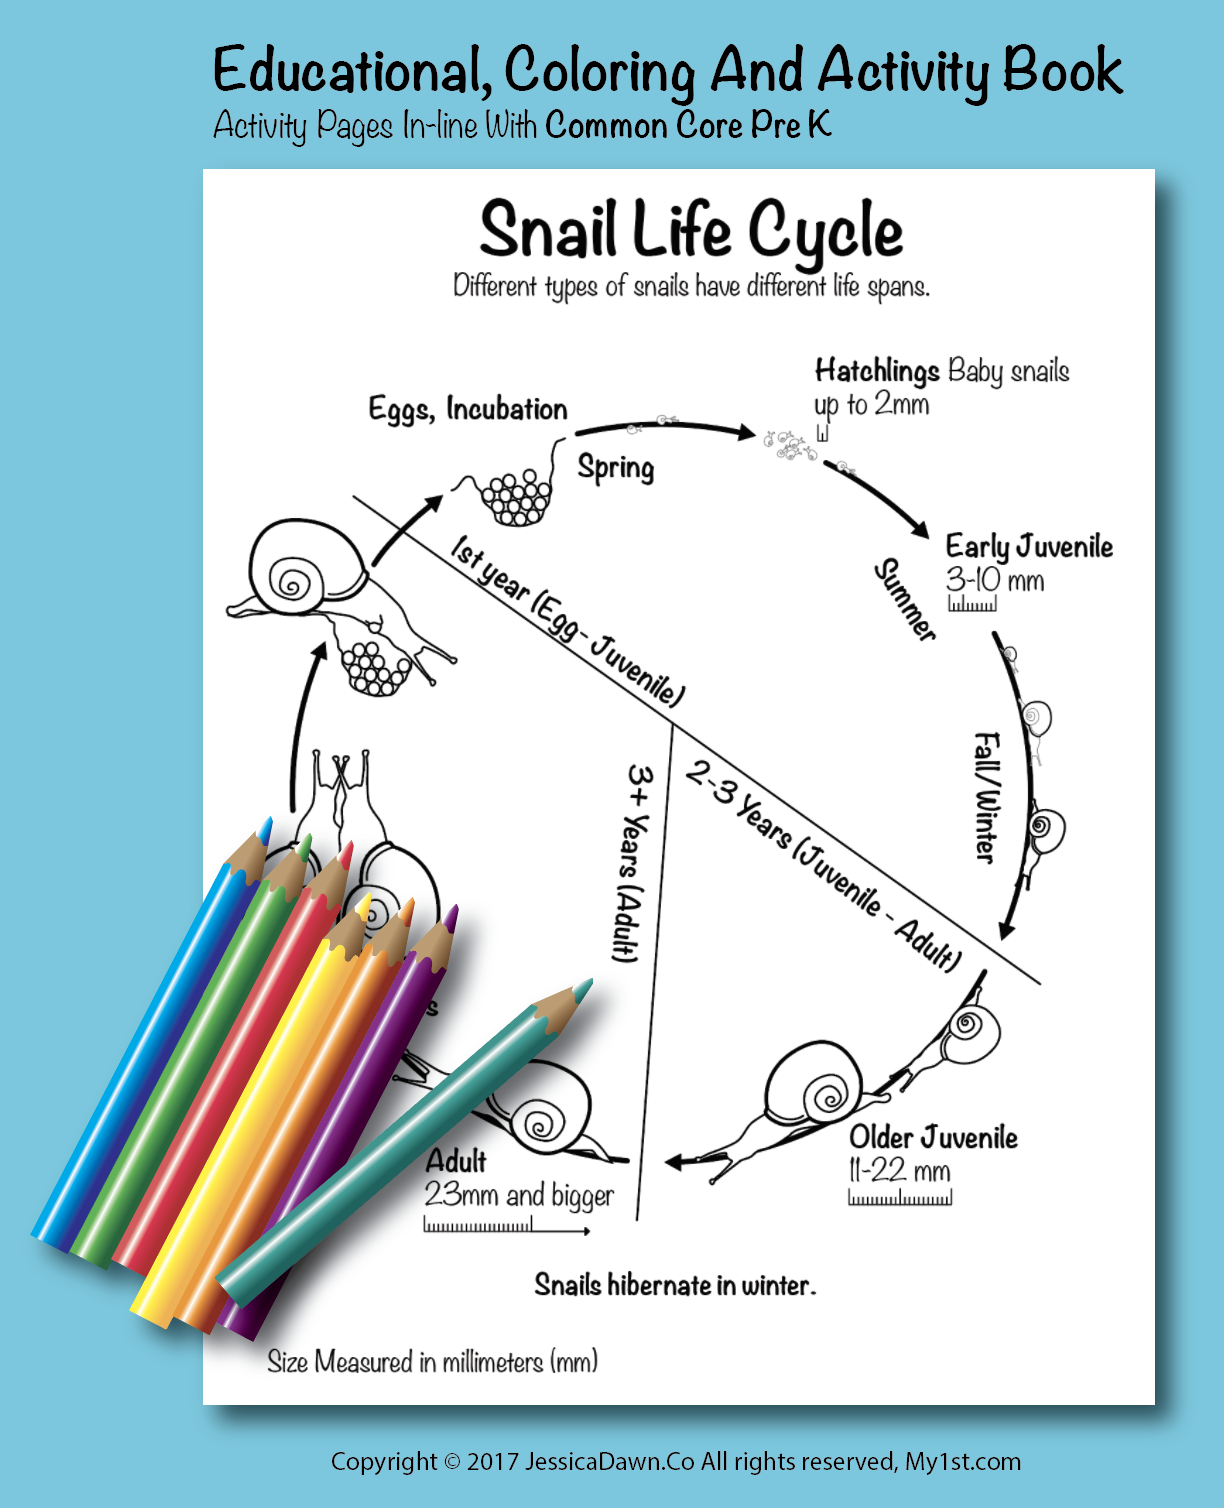 Snail Life Cycle My1st Coloring